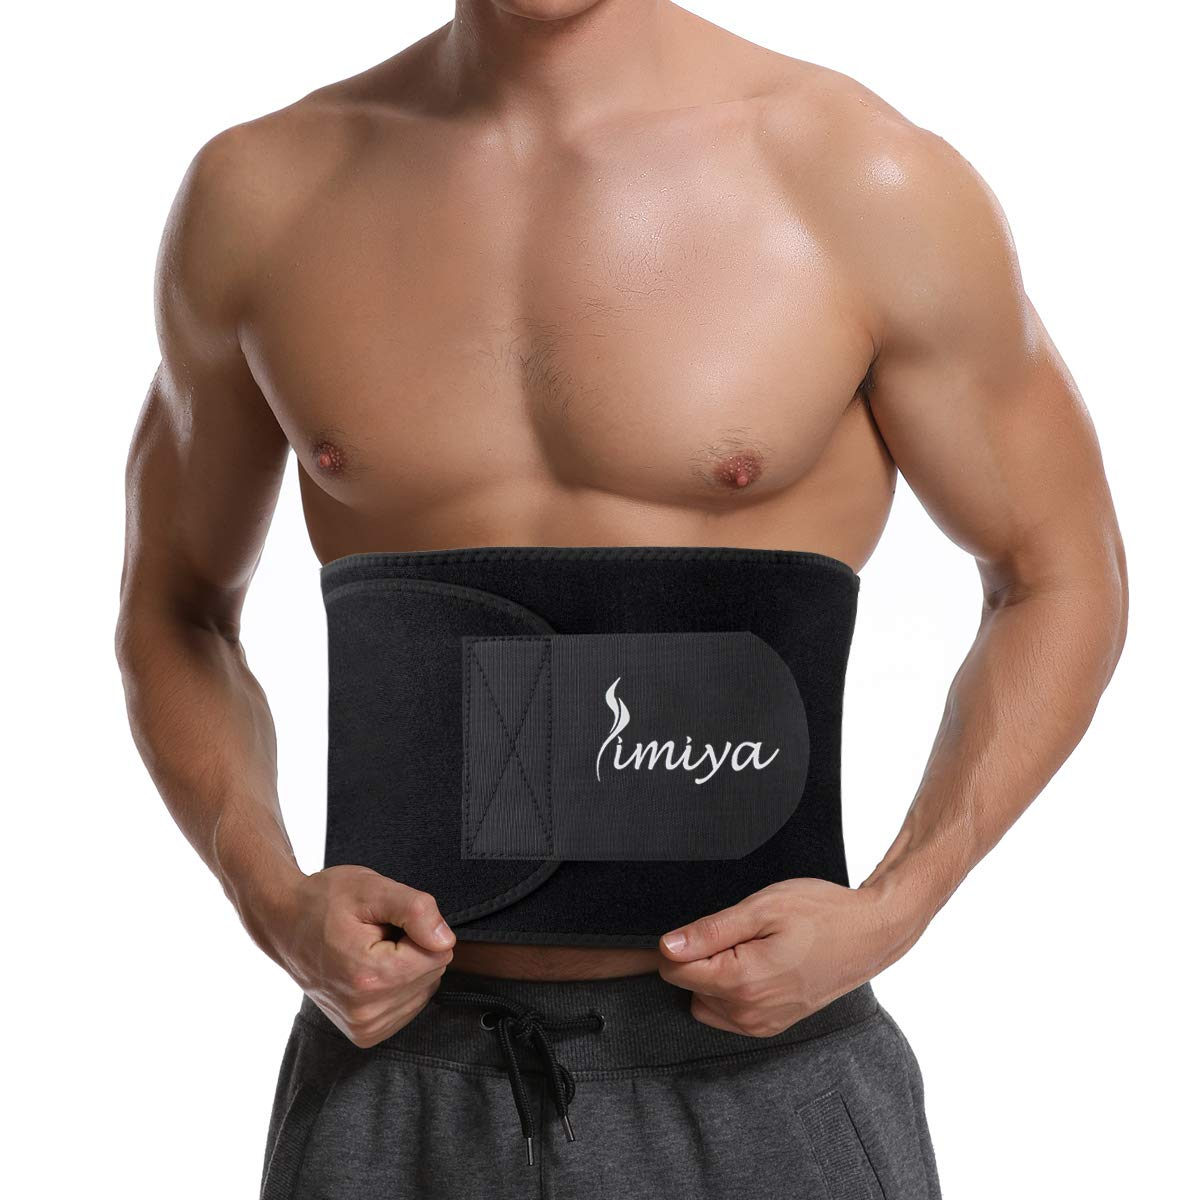 SIMIYA Waist Trimmer for Women Men, Neoprene Sauna Slim Belt, Abdominal Trainer, Stomach Wraps for Weight Loss, Low Back and Lumbar Support, Adjustable Stomach Belly Fat Burner Wrap